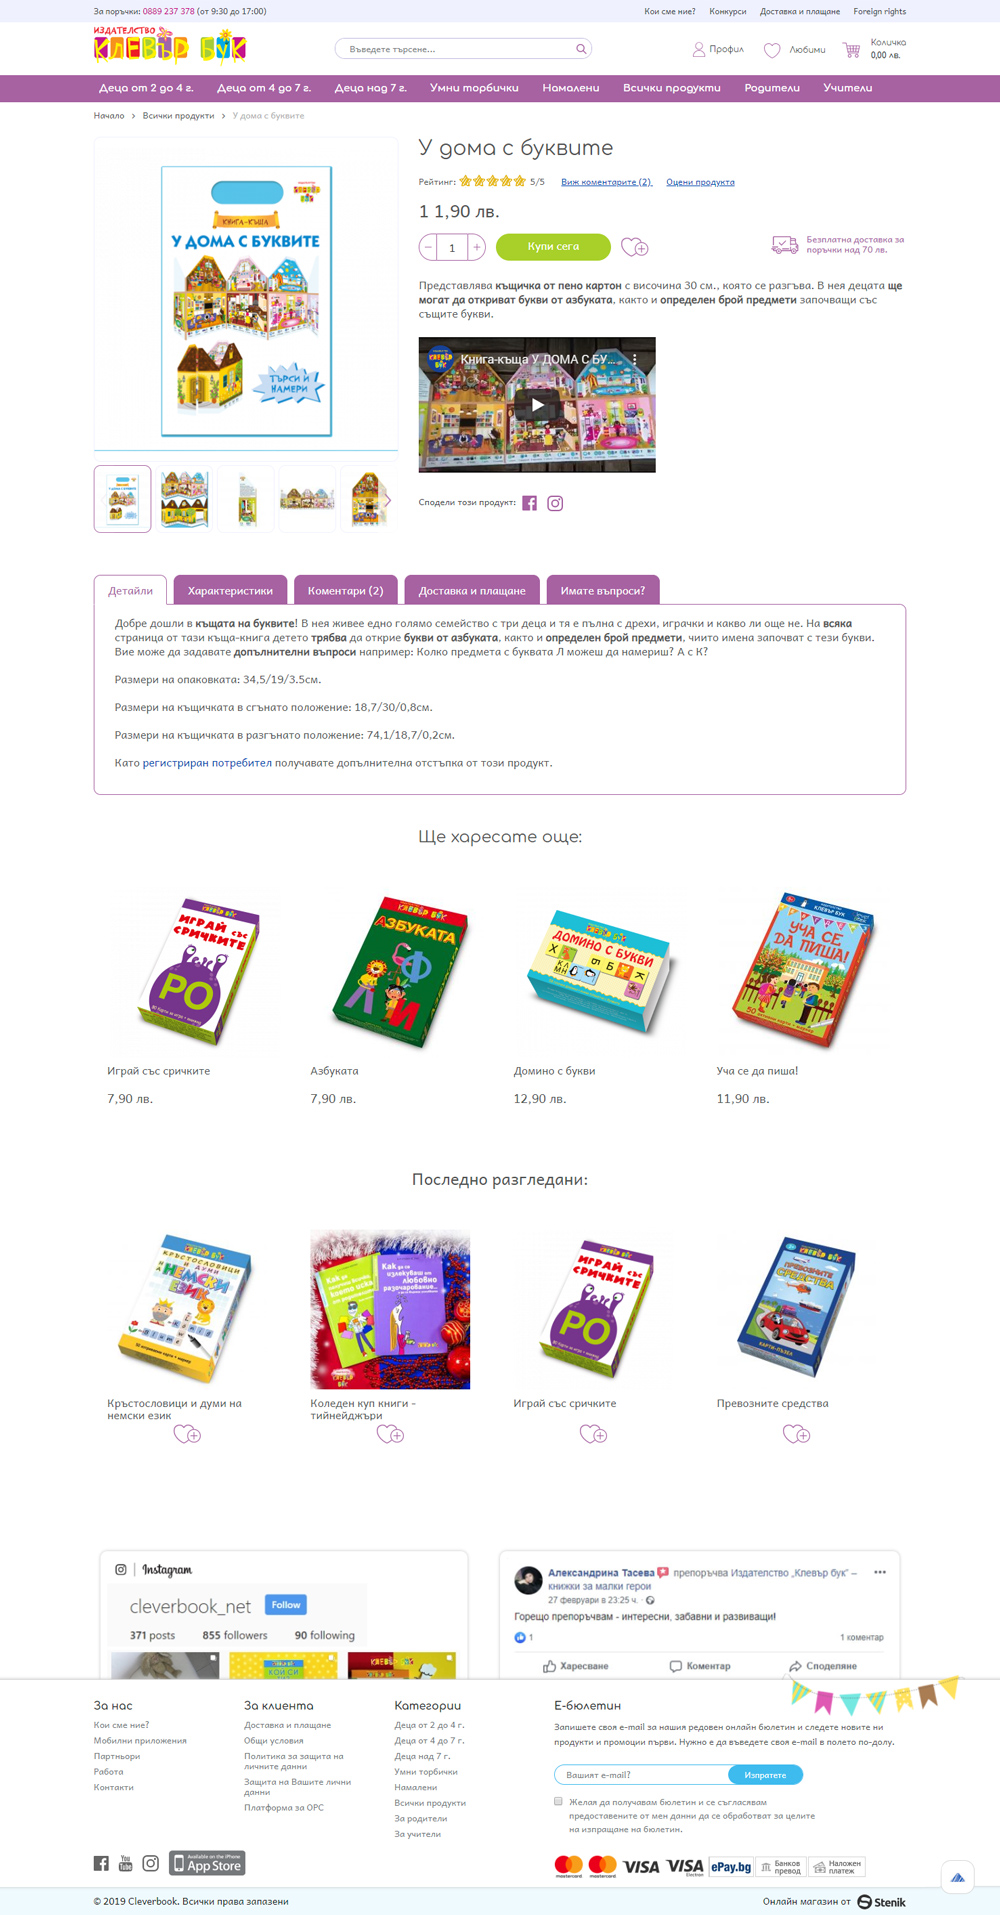 Redesign of CleverBook Publishing  House  Online Store, Clever Book - Online Shops, Stenik, Magento